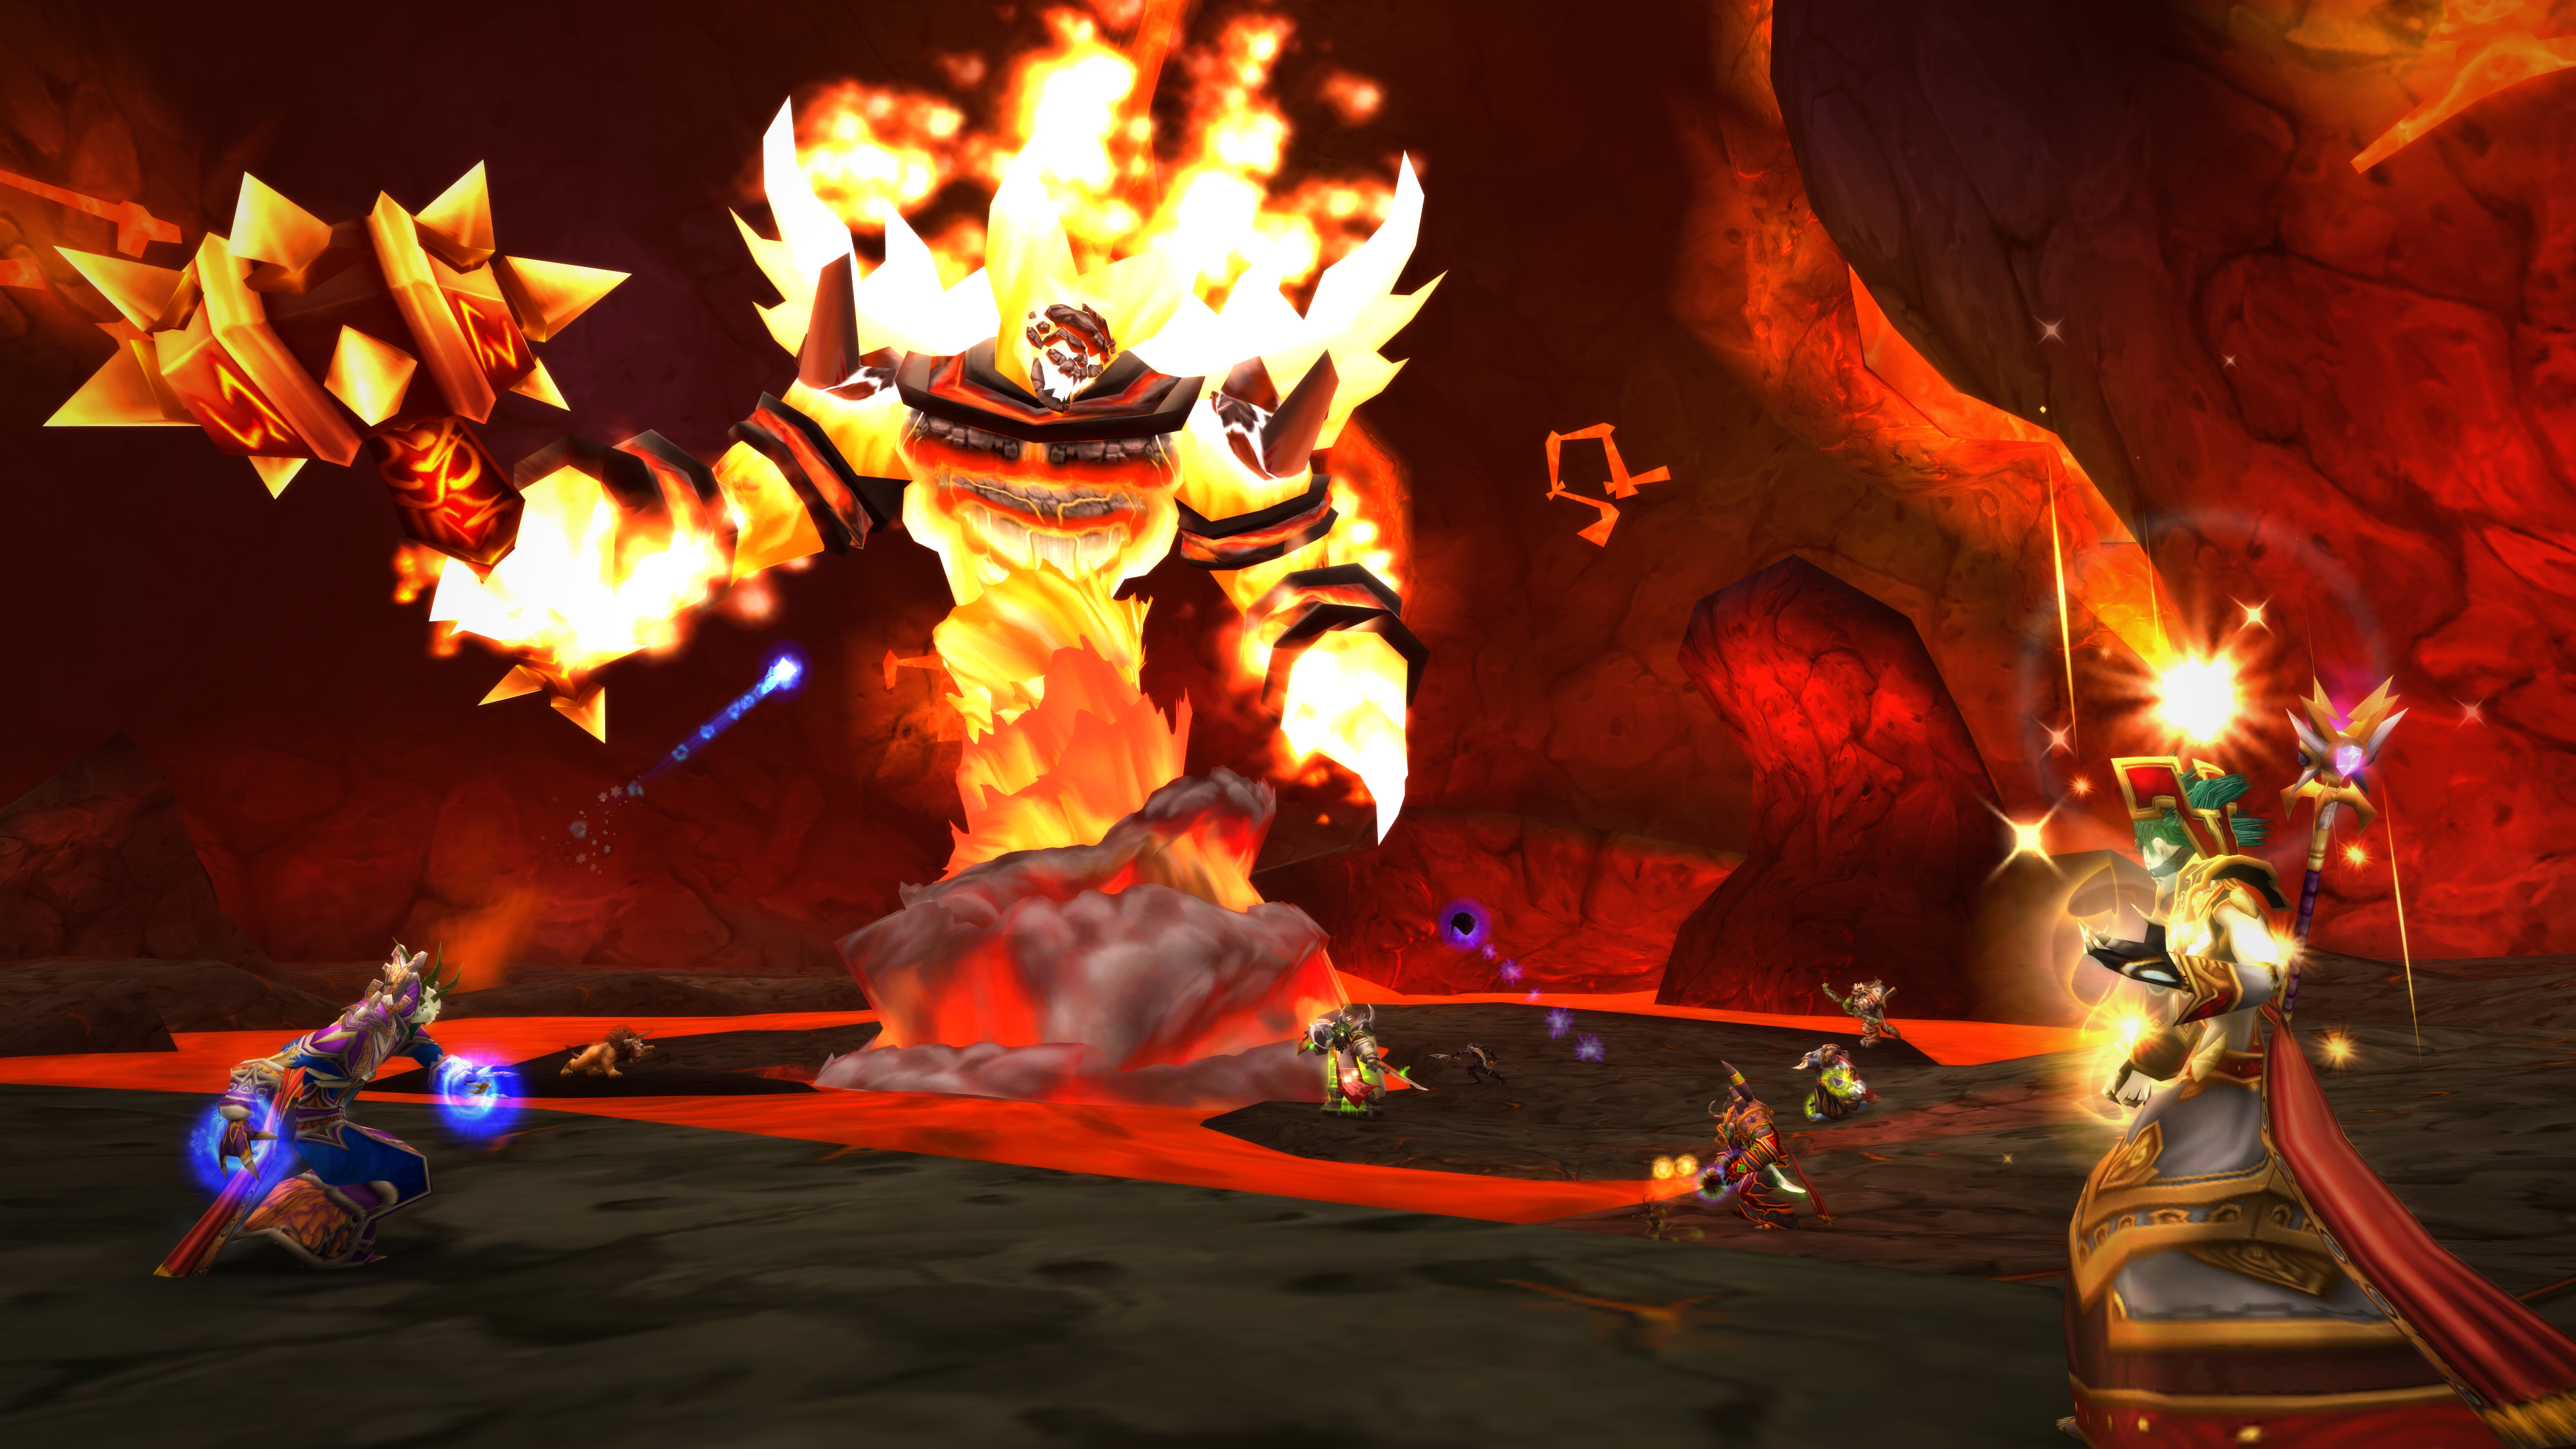 Ragnaros, one of the original big baddies of World of Warcraft, rages back to life in World of Warcraft Classic.